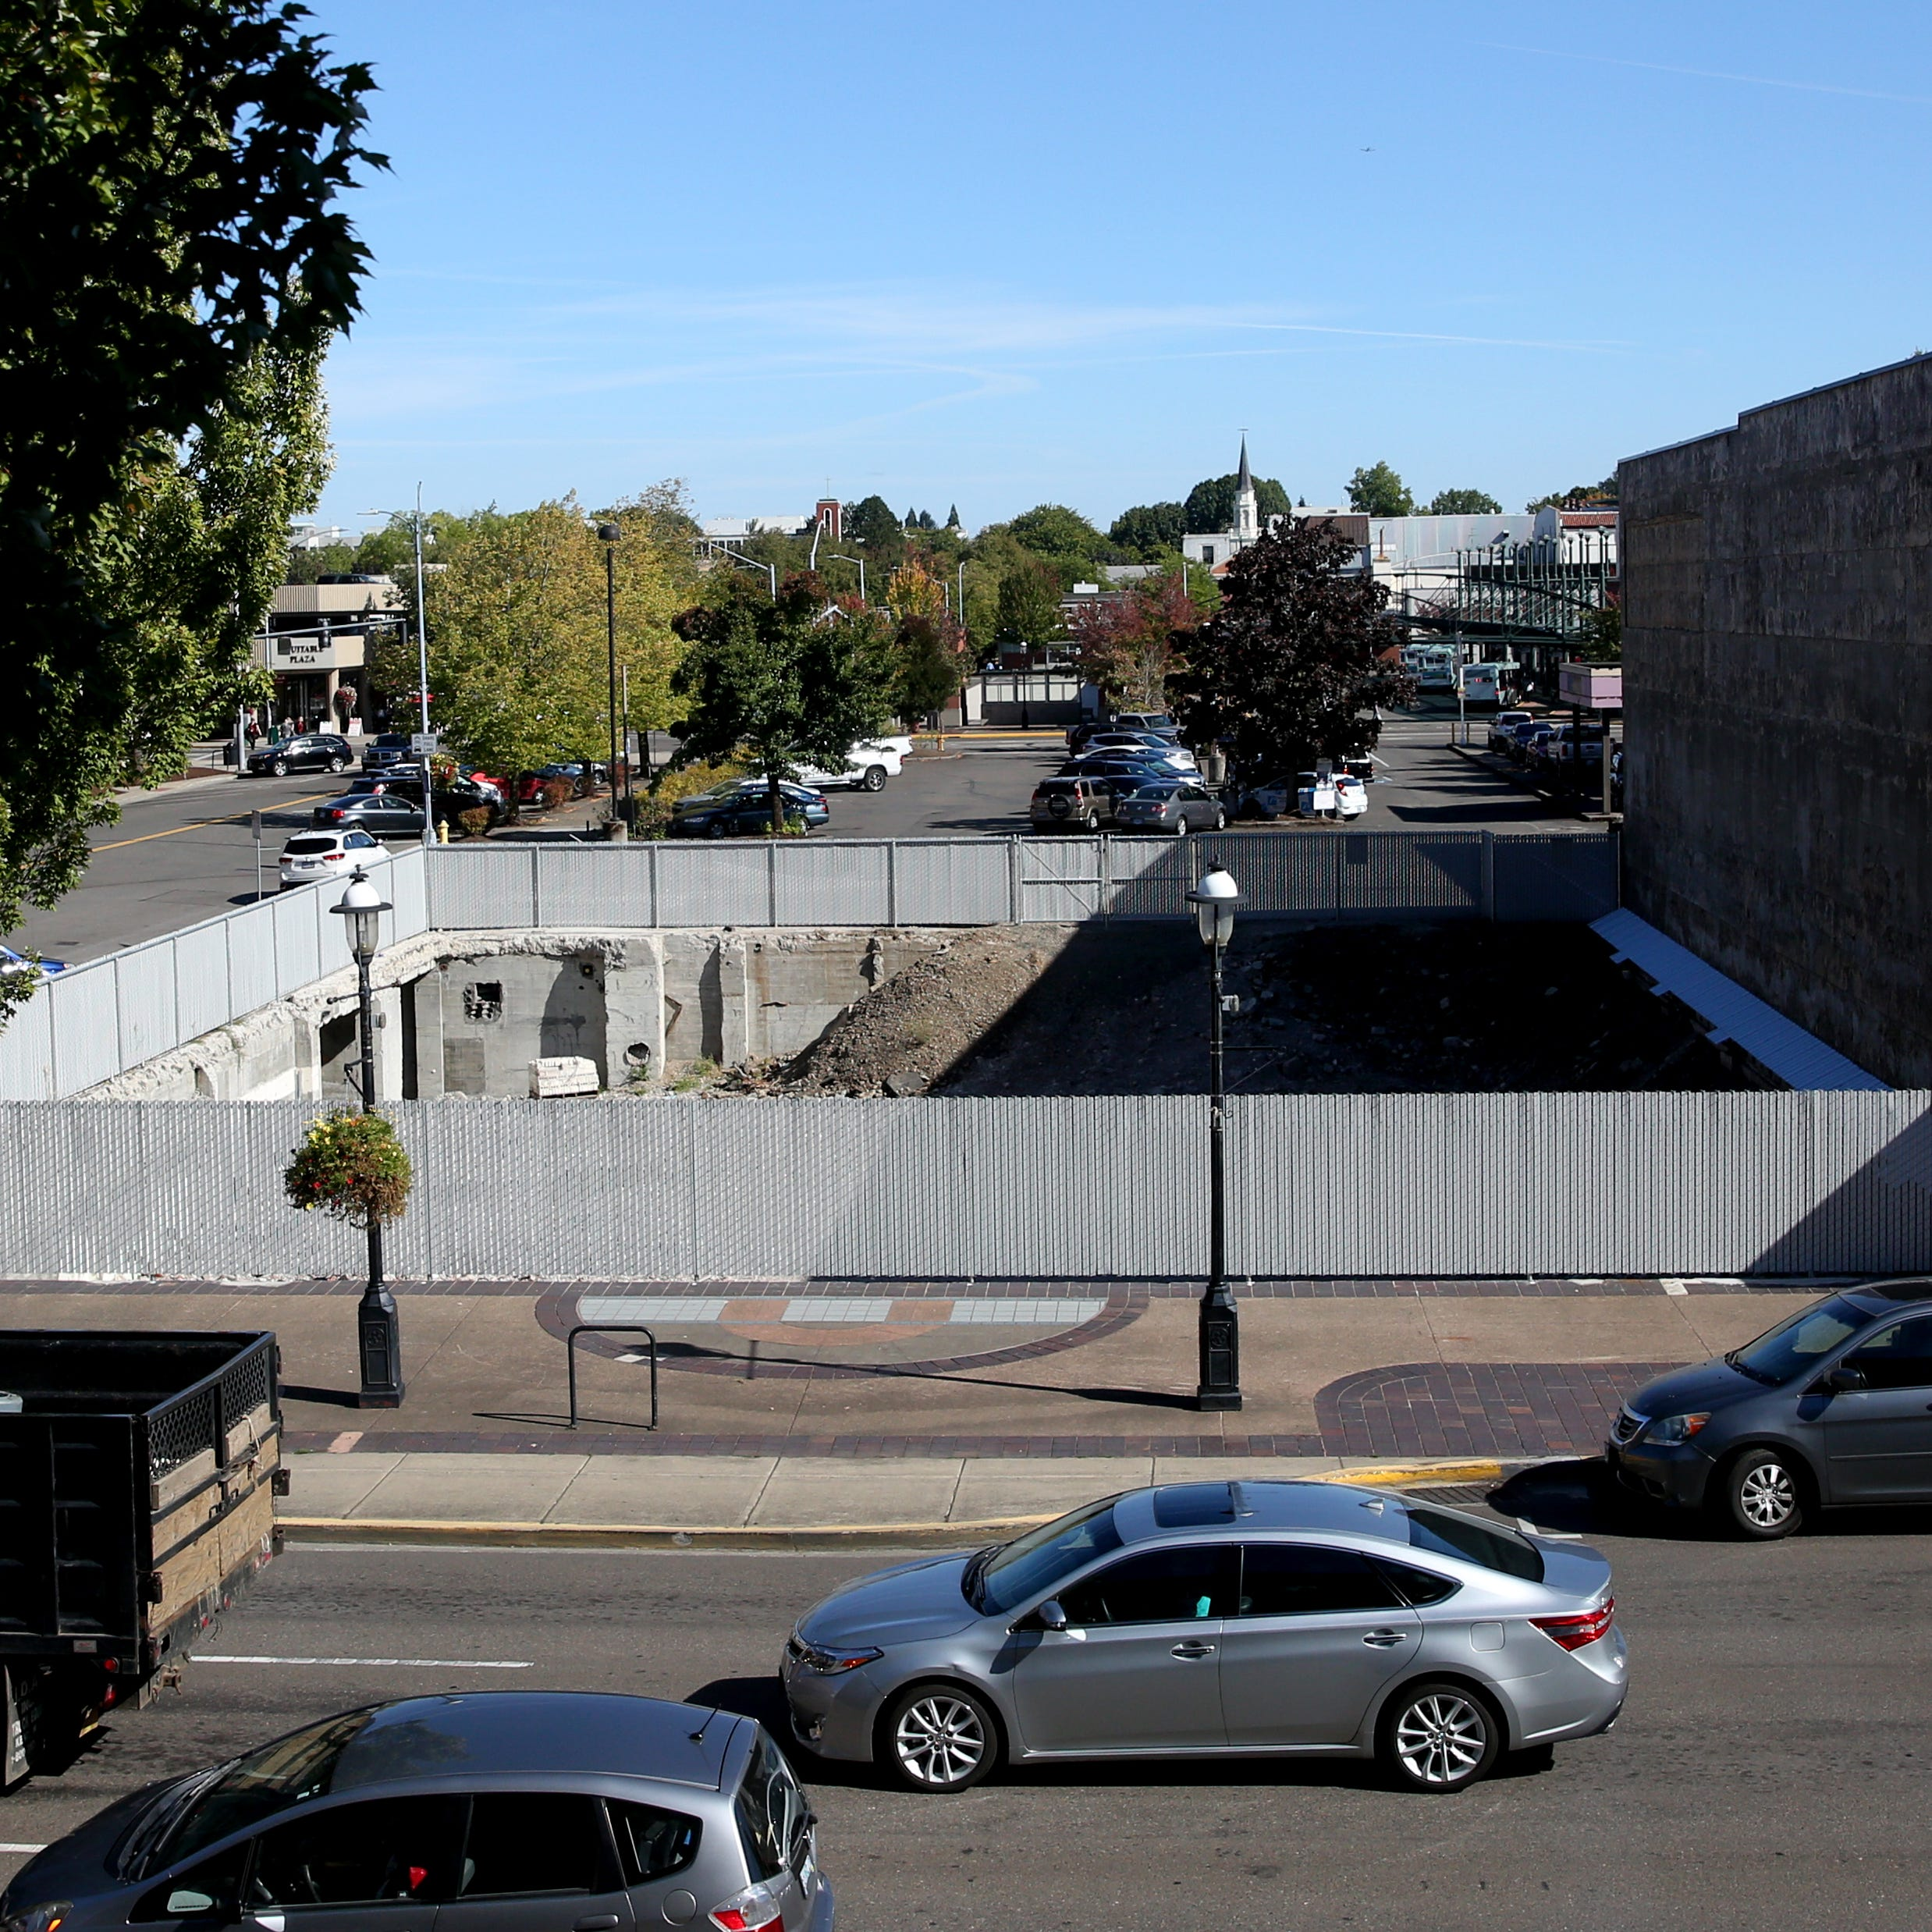 More than 150 apartments proposed for downtown Salem, including former Wells Fargo site